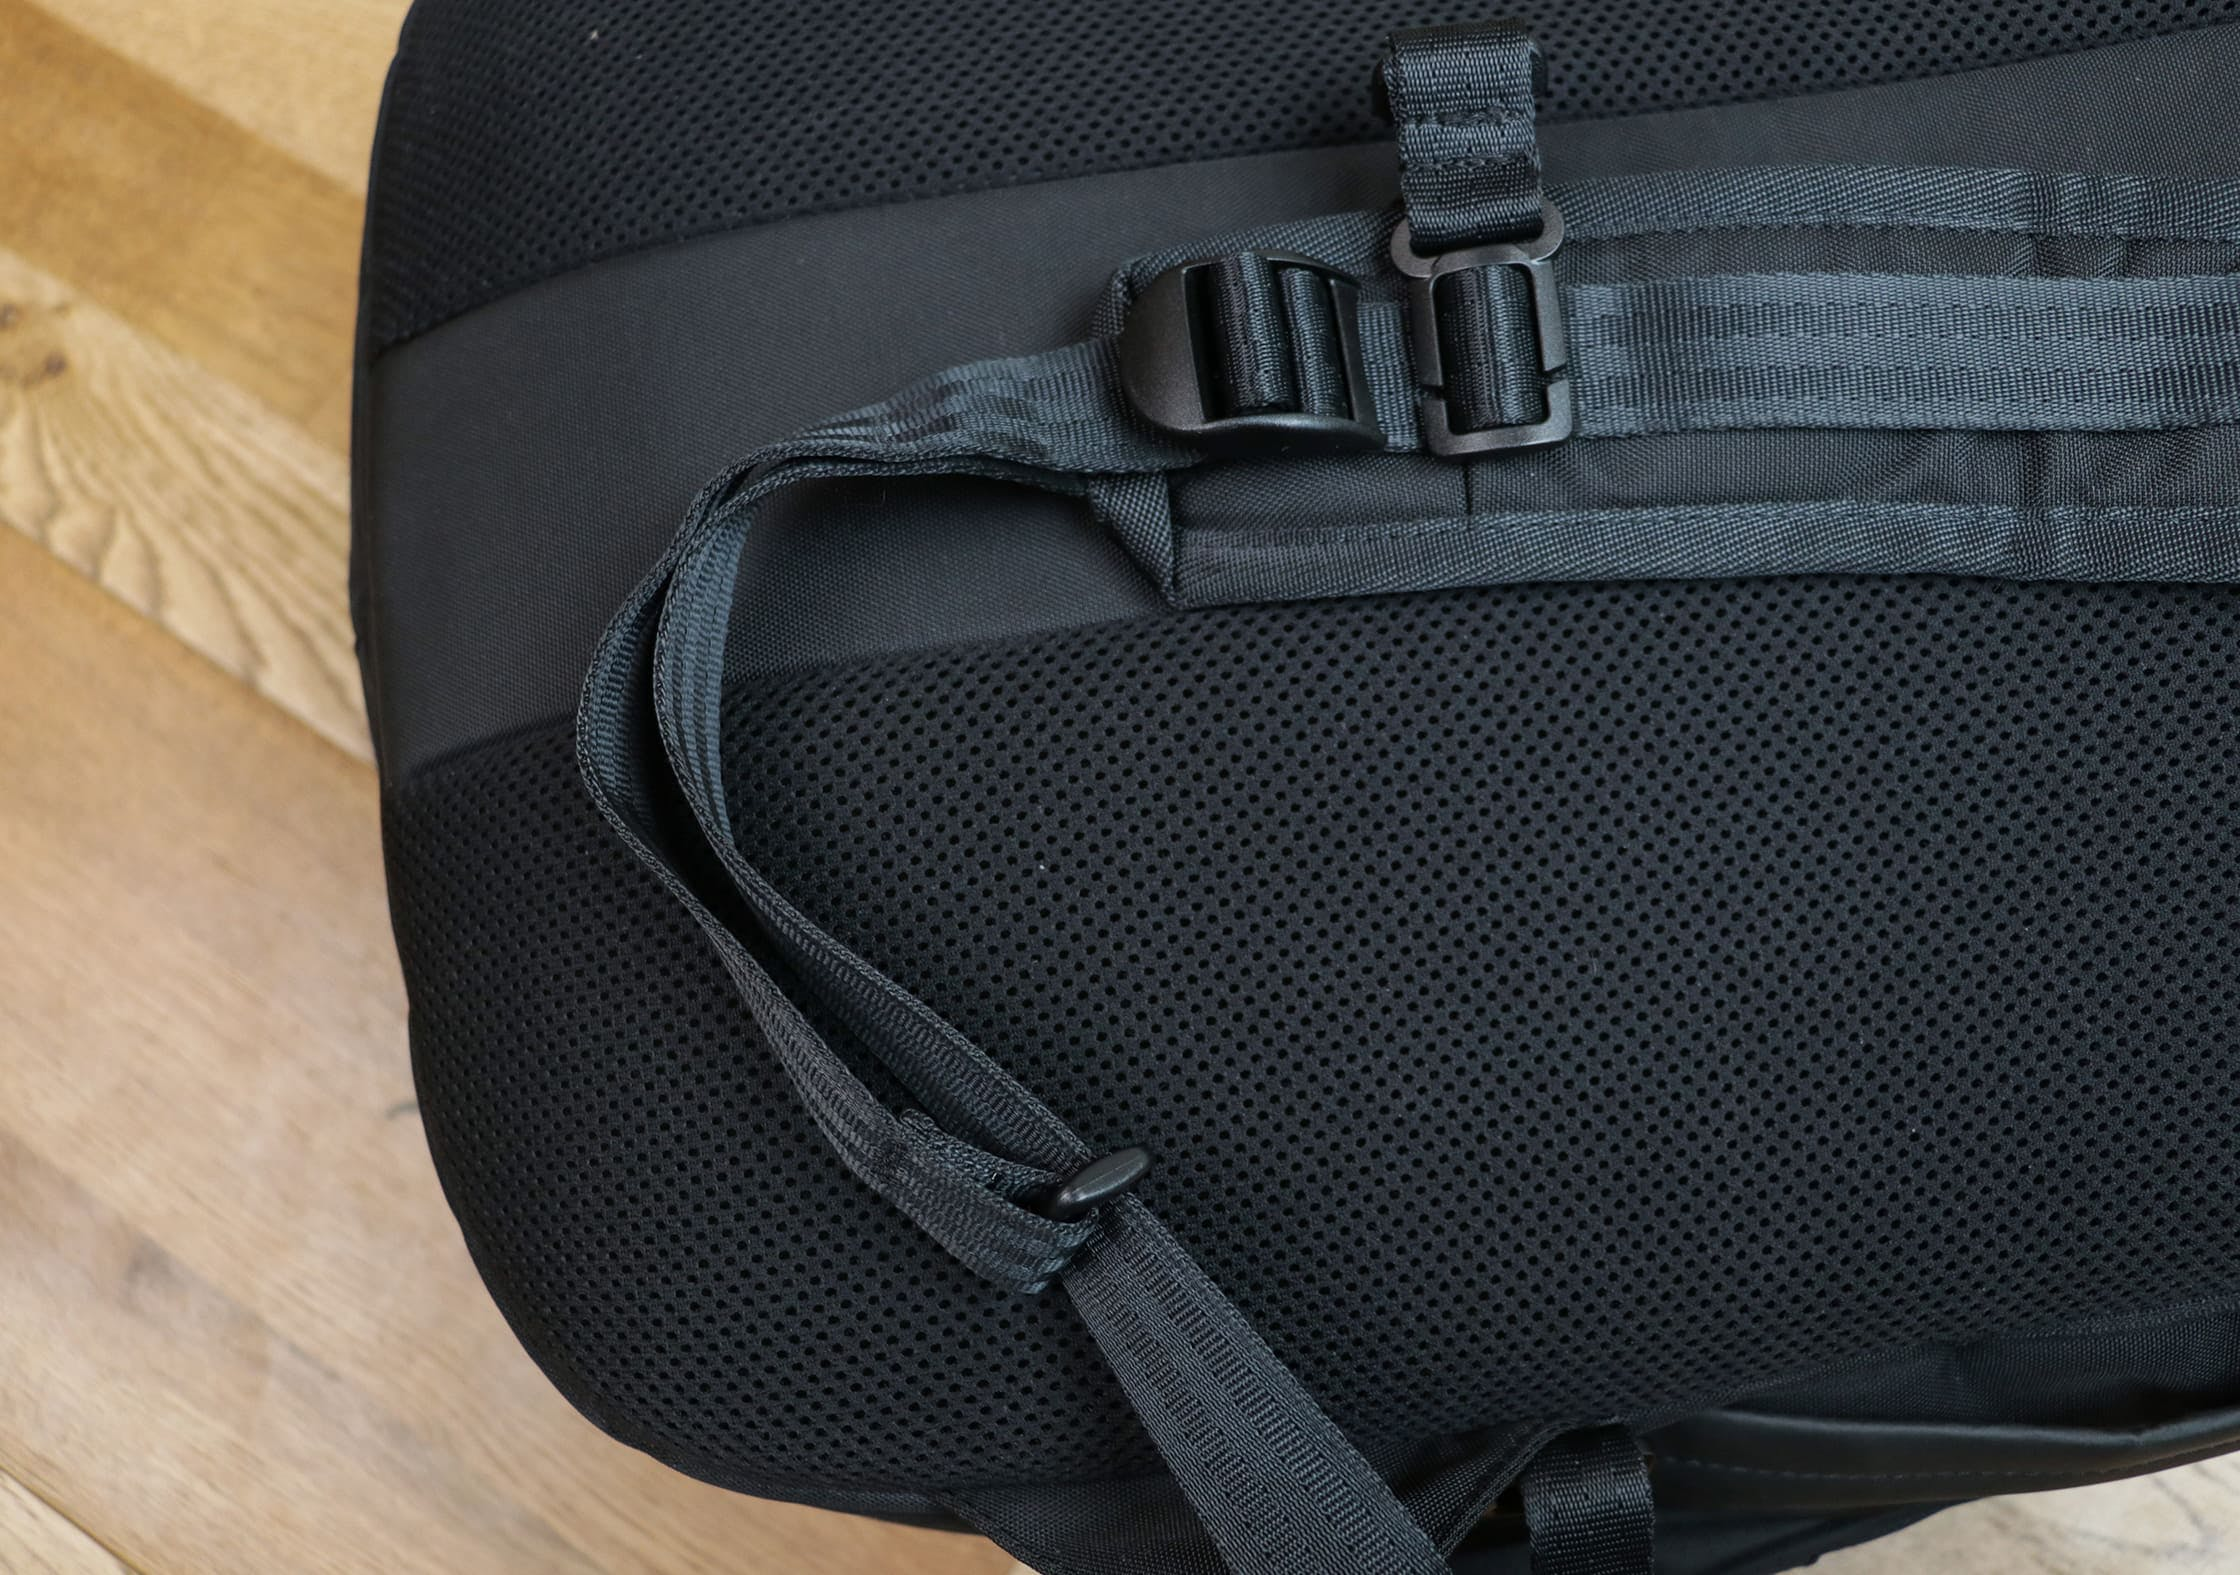 OPPOSETHIS Invisible Carry-On Shoulder Strap Keeper System